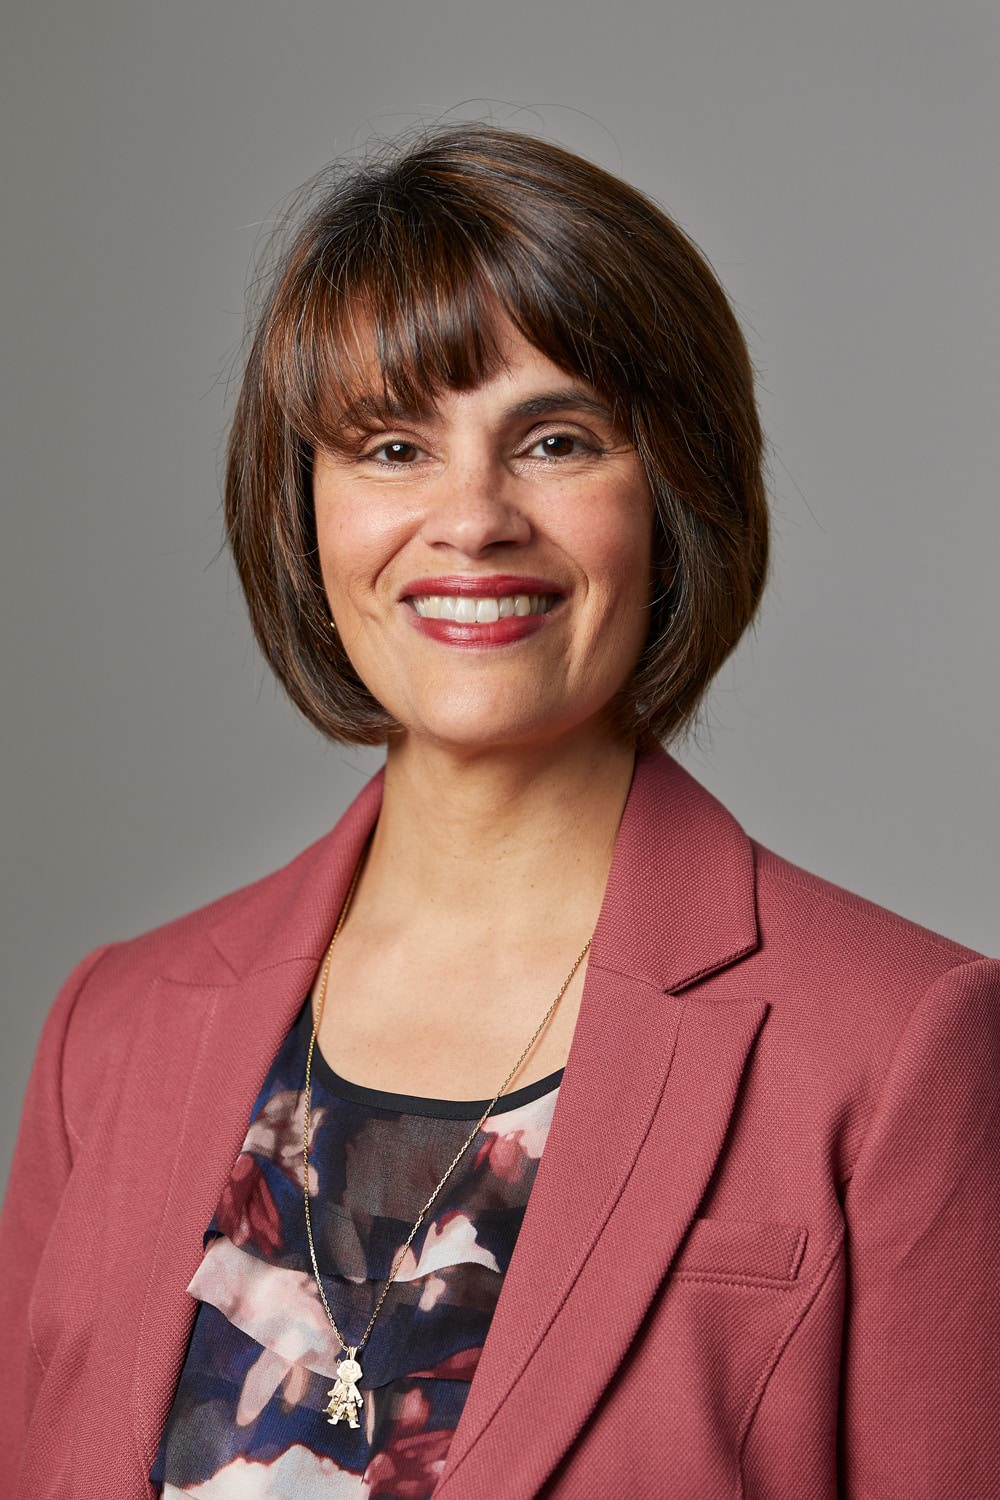 Christine A. Soto to serve as a panelist for the New Jersey Department of Education's Hispanic Heritage Month Celebration